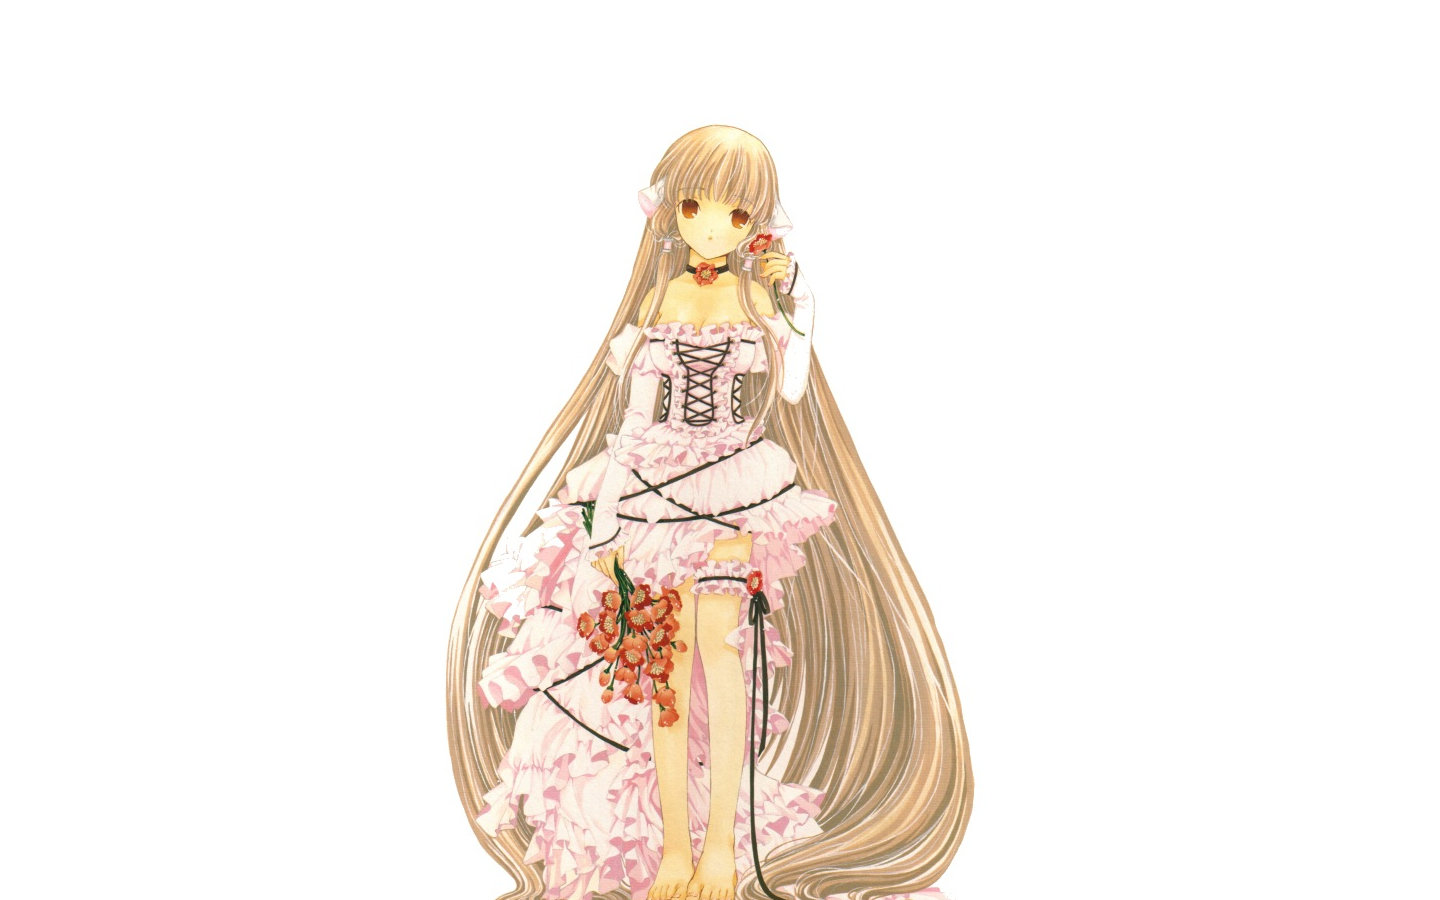 Awesome Chobits free wallpaper ID:149723 for hd 1440x900 computer